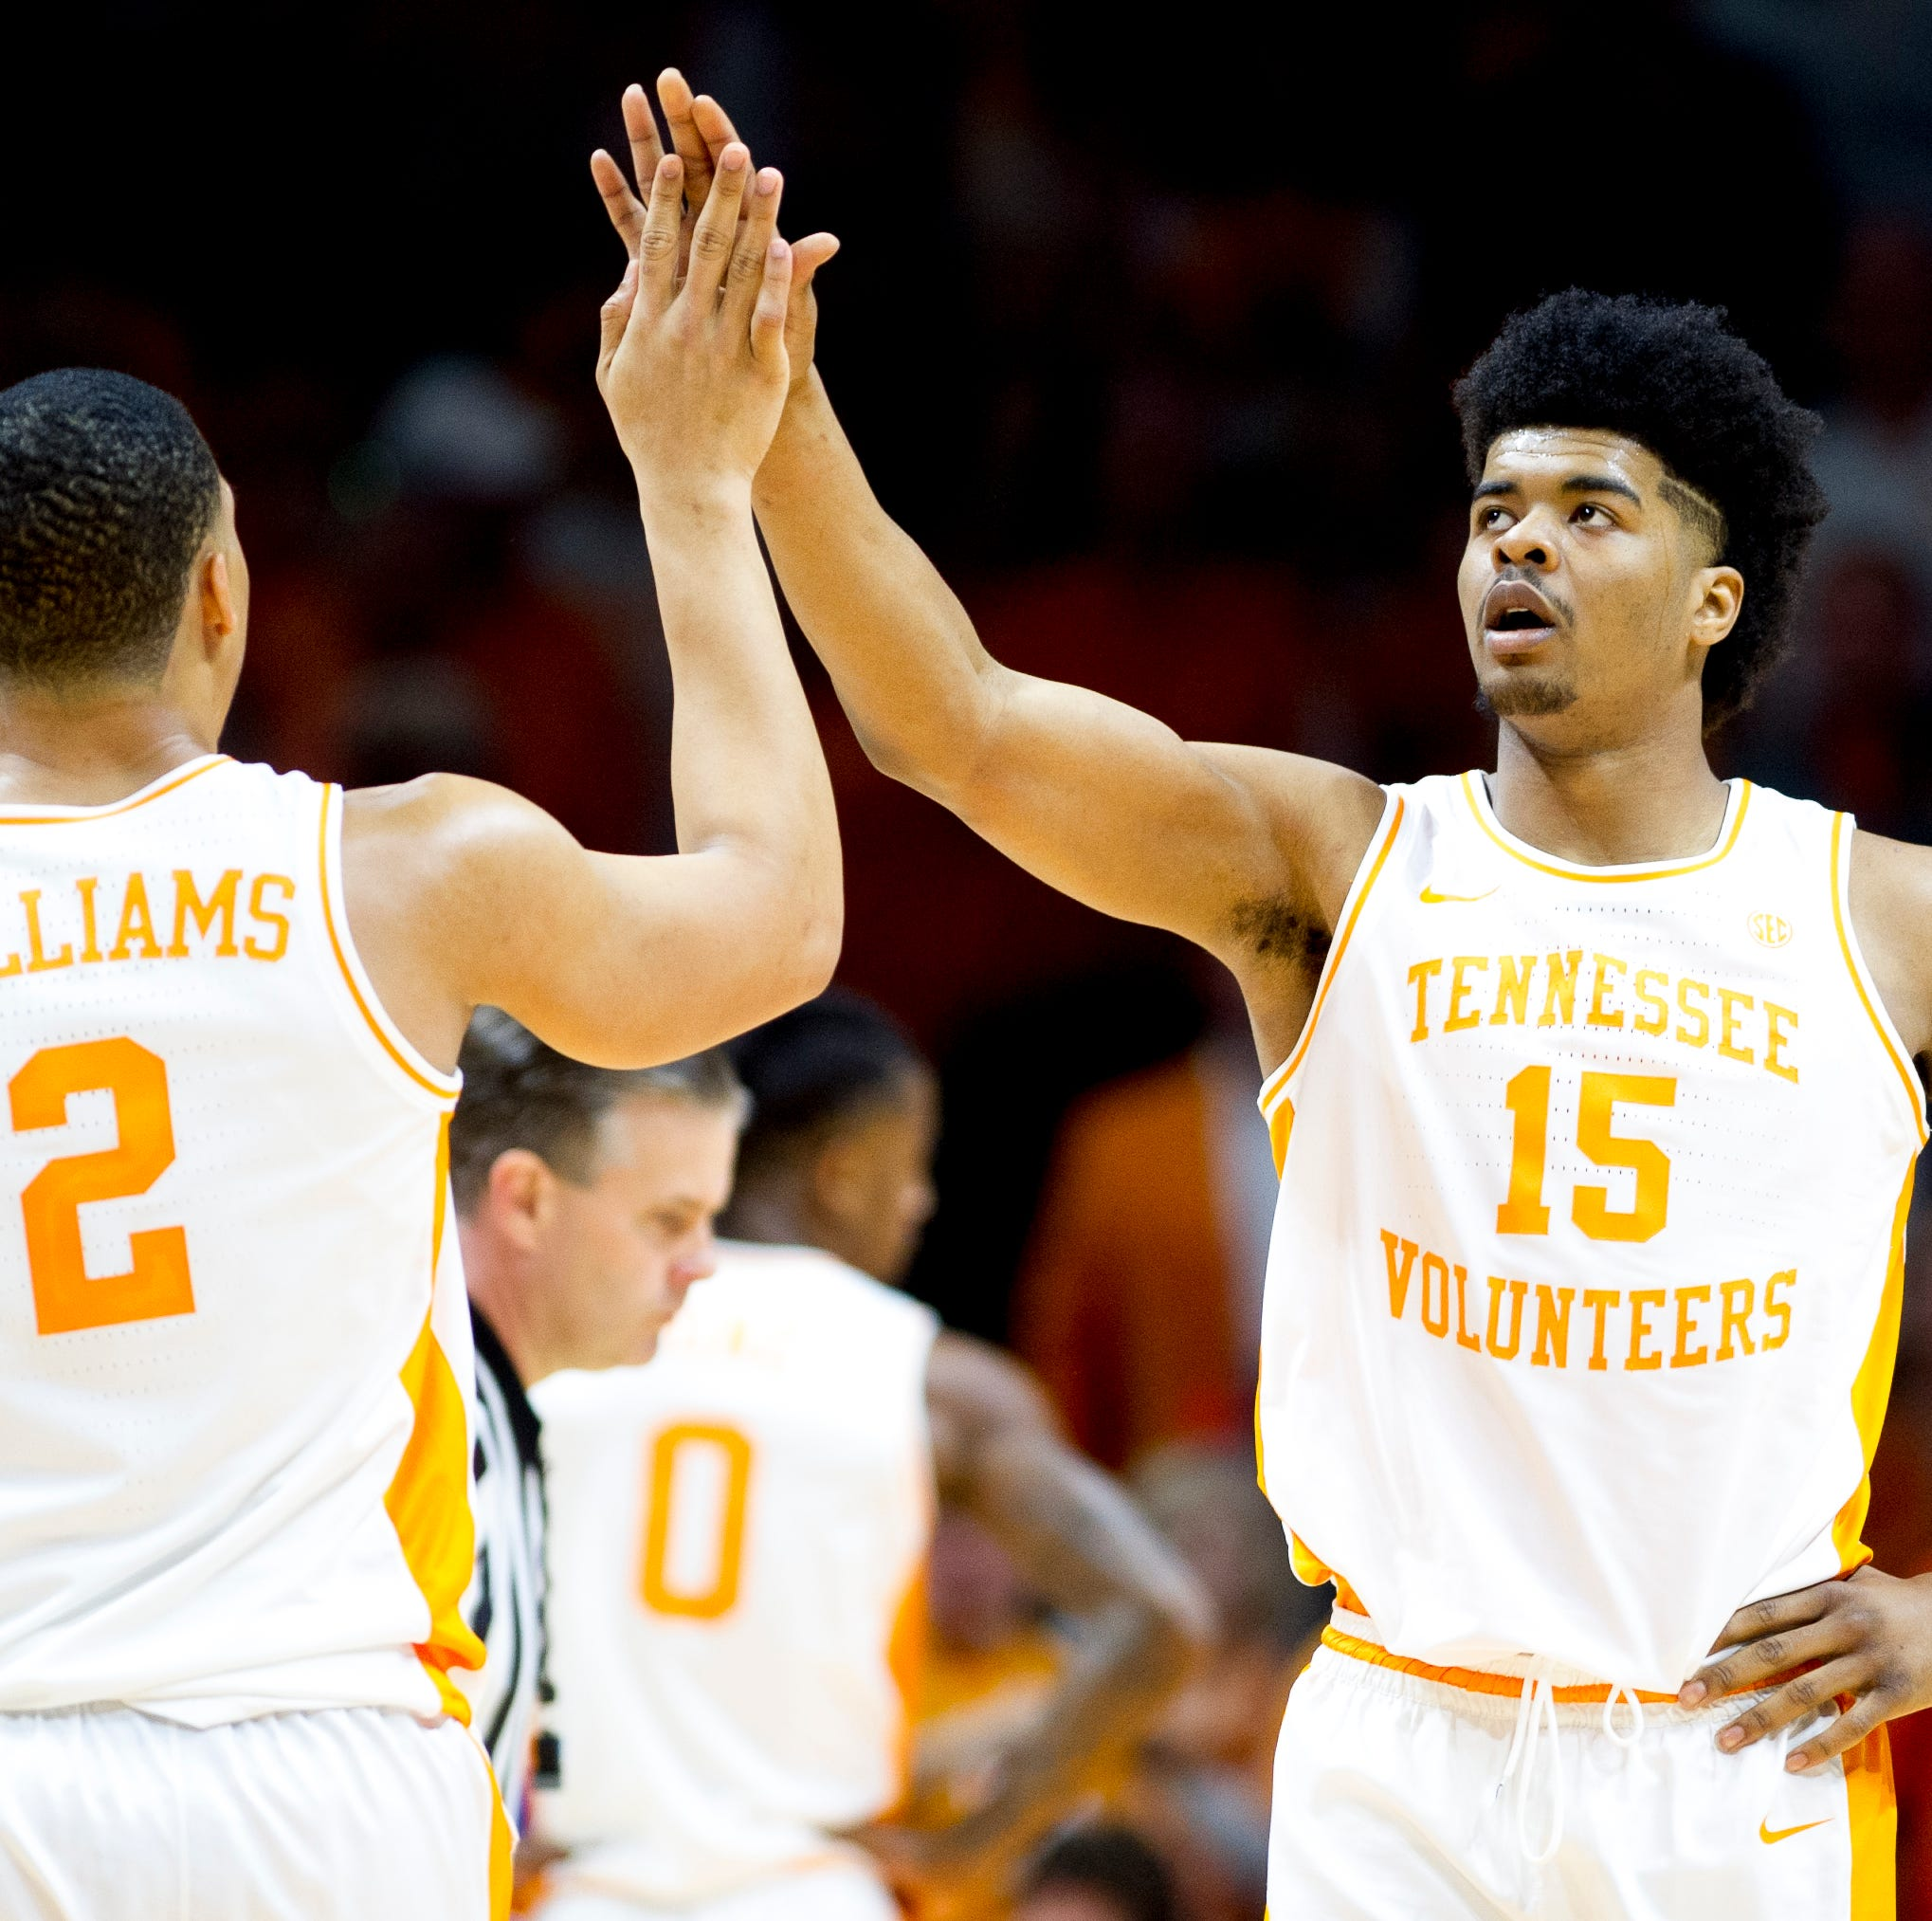 Tennessee Vols basketball expects a 'sea of orange' at the SEC Tournament